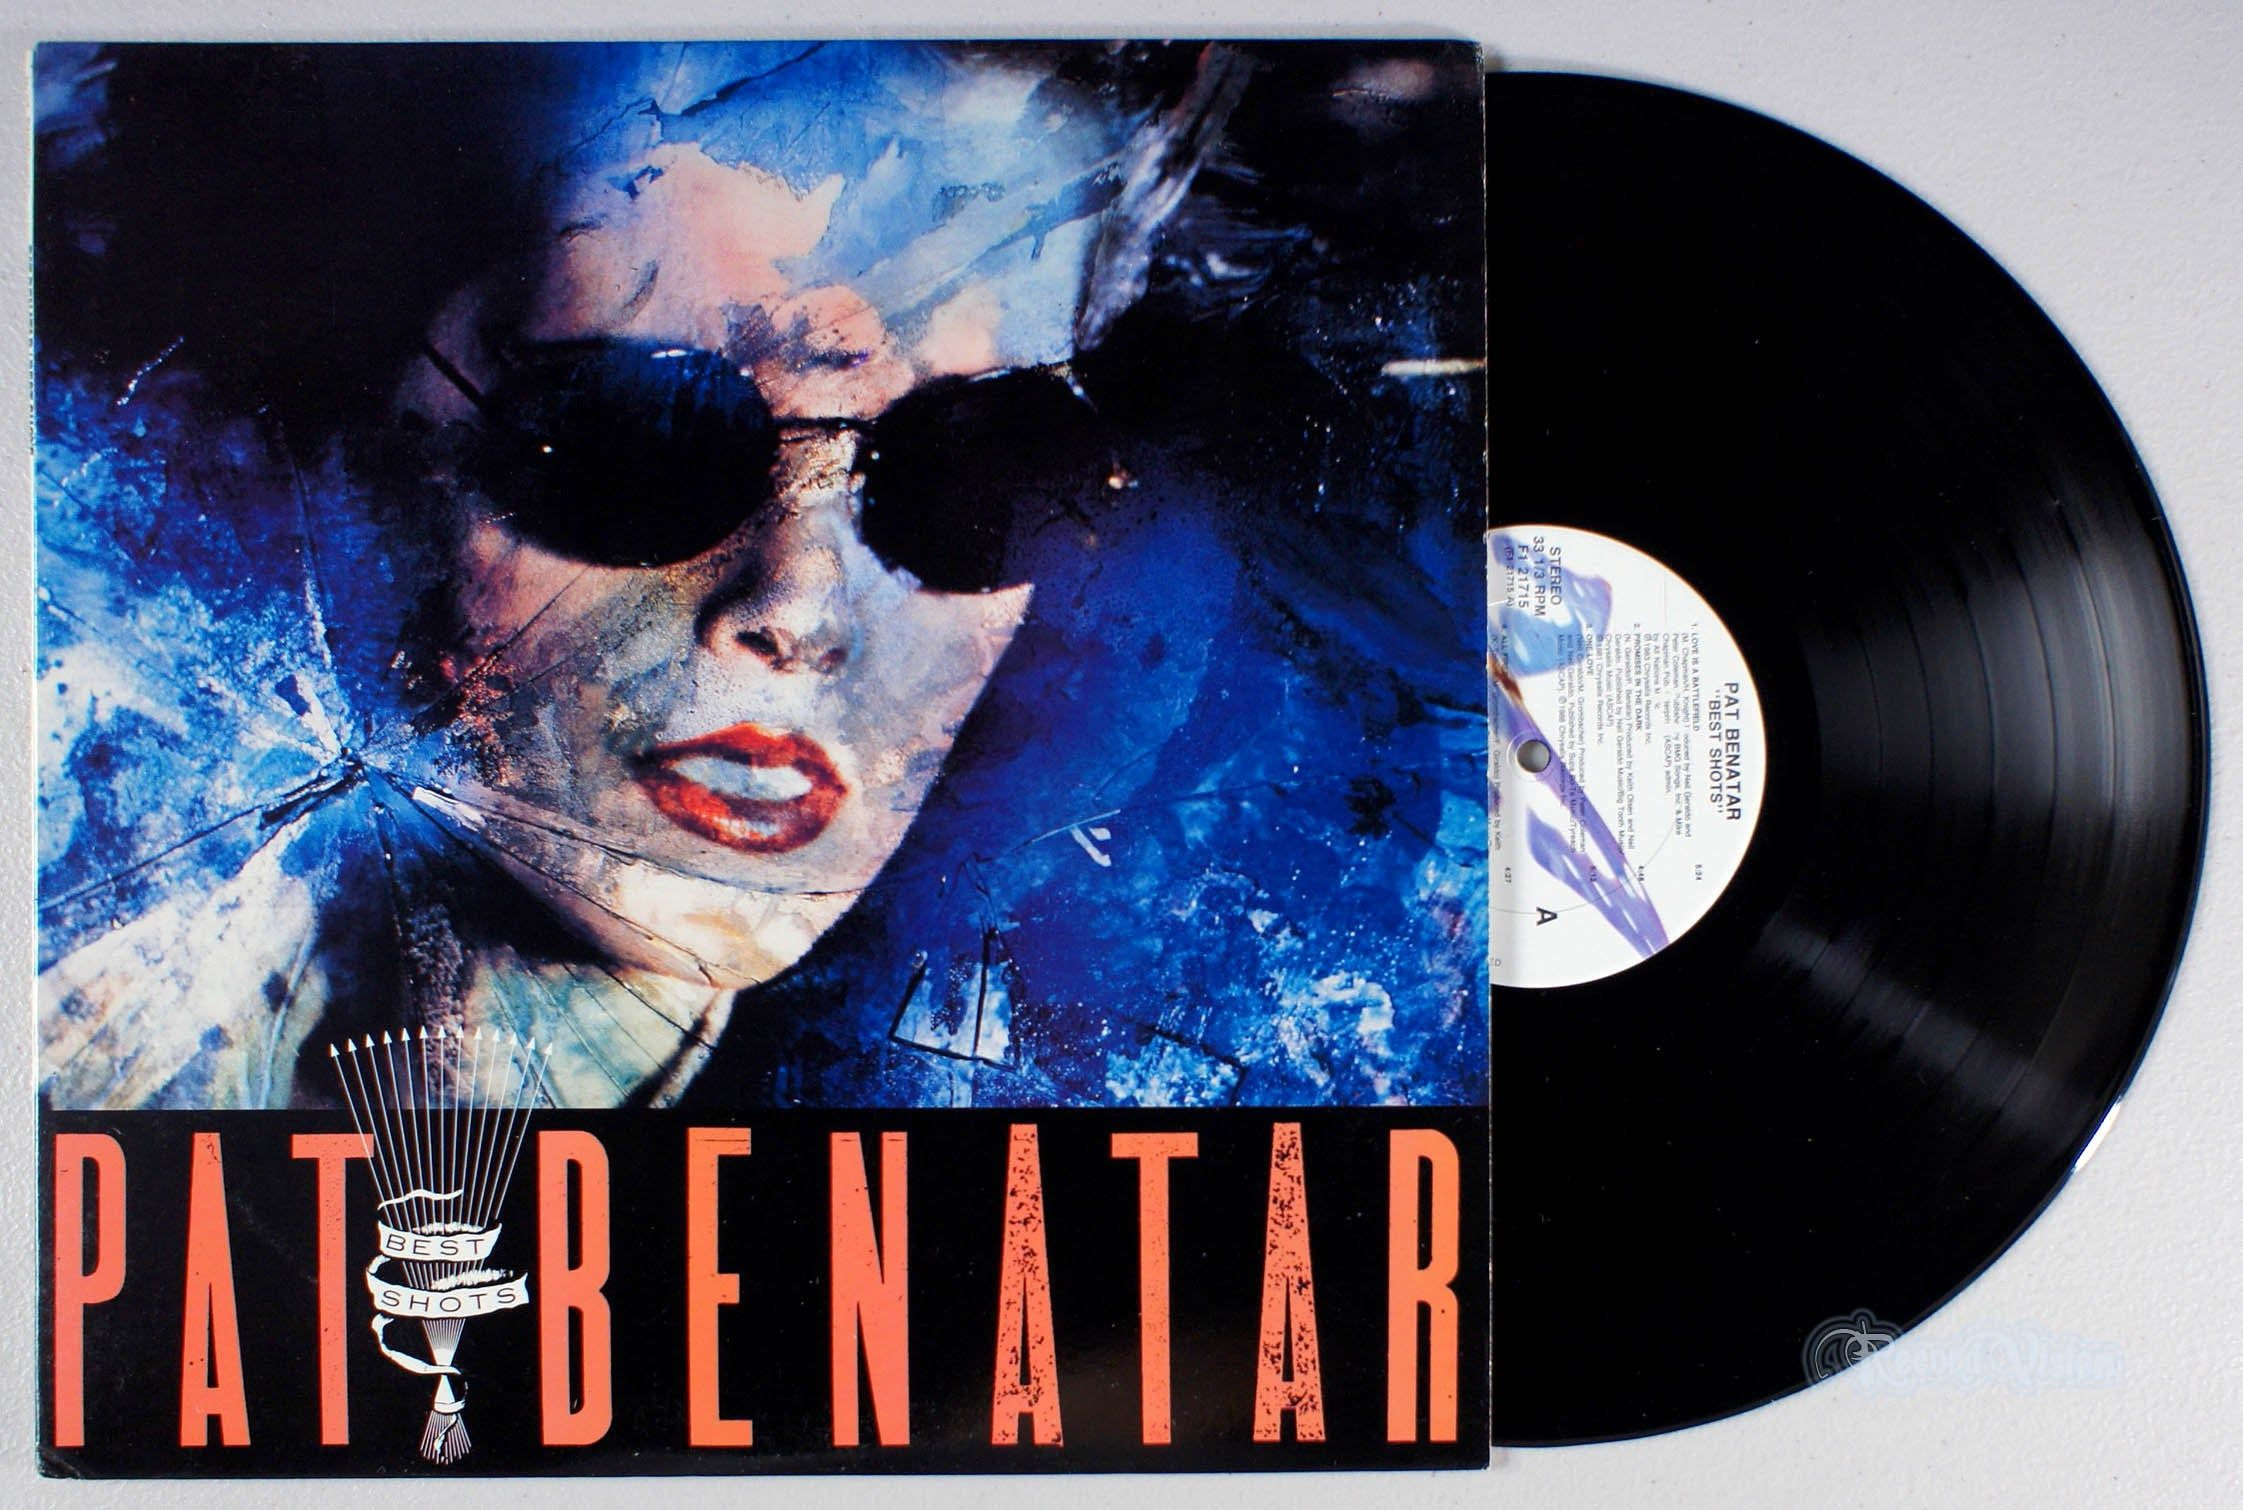 Bestshots Is A Platinum Greatesthits Album By Patbenatar The Album Delivers Arenarock Staples One Right After T Vinyl Record Album Arena Rock Album Covers